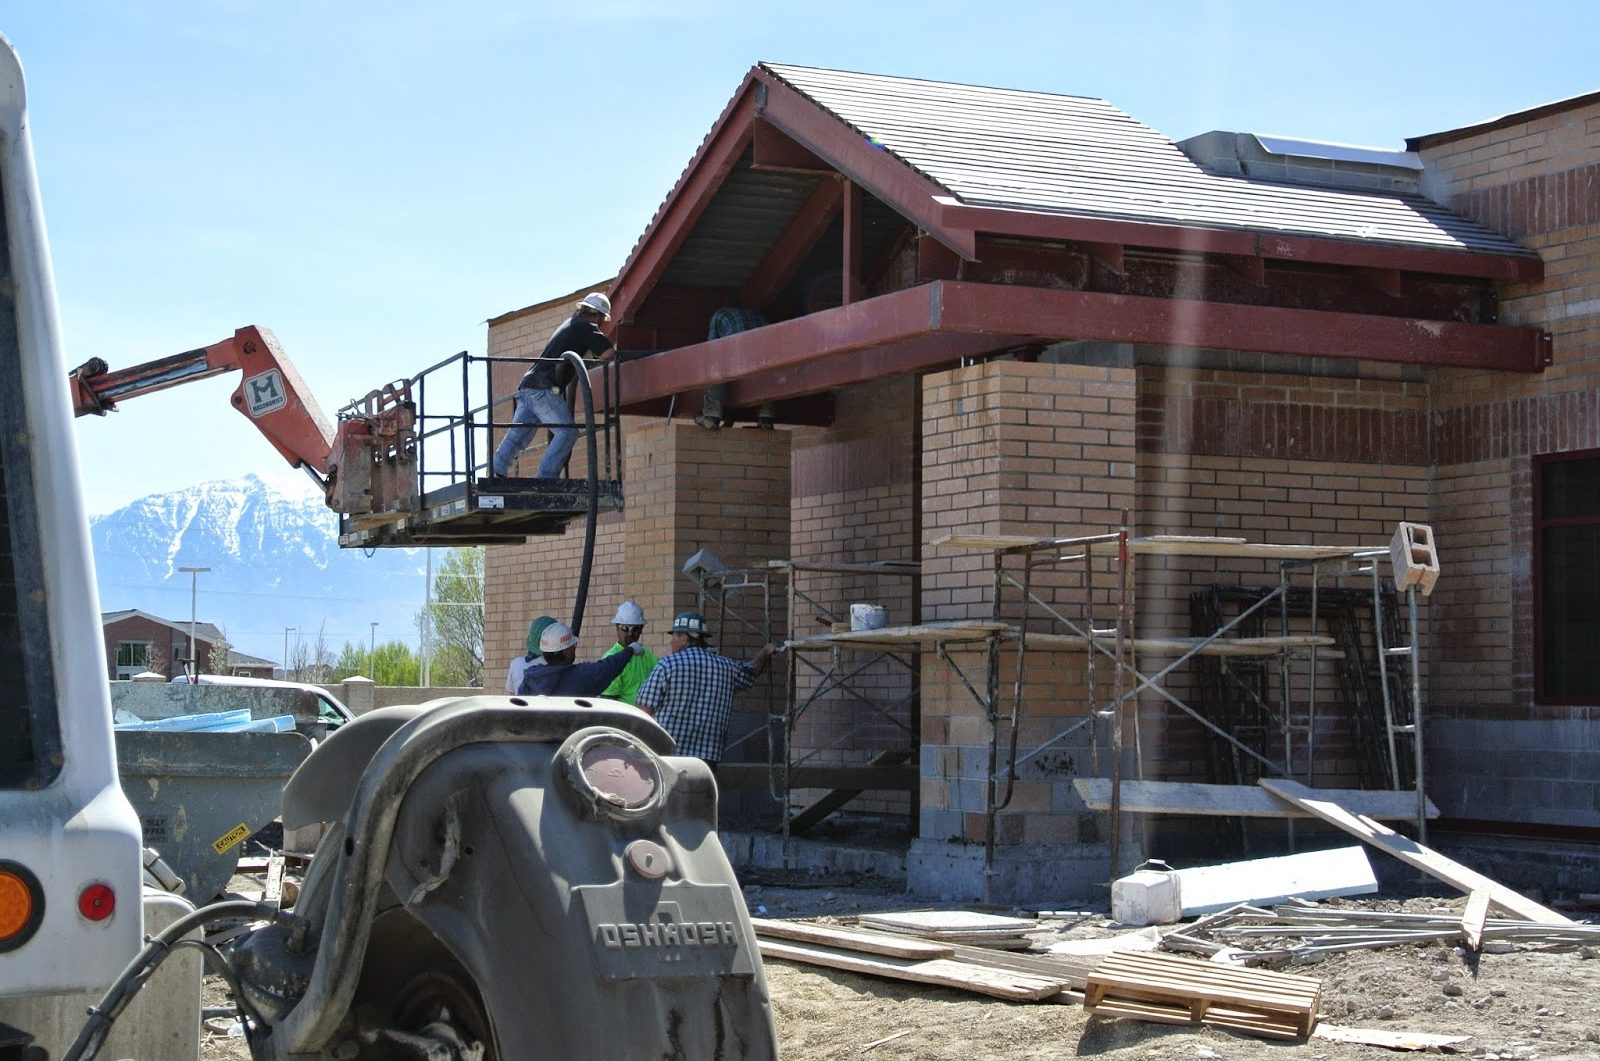 Installation Support for Entry Way on the Side of the School Building | Dry Creek Elementary, Lehi, UT